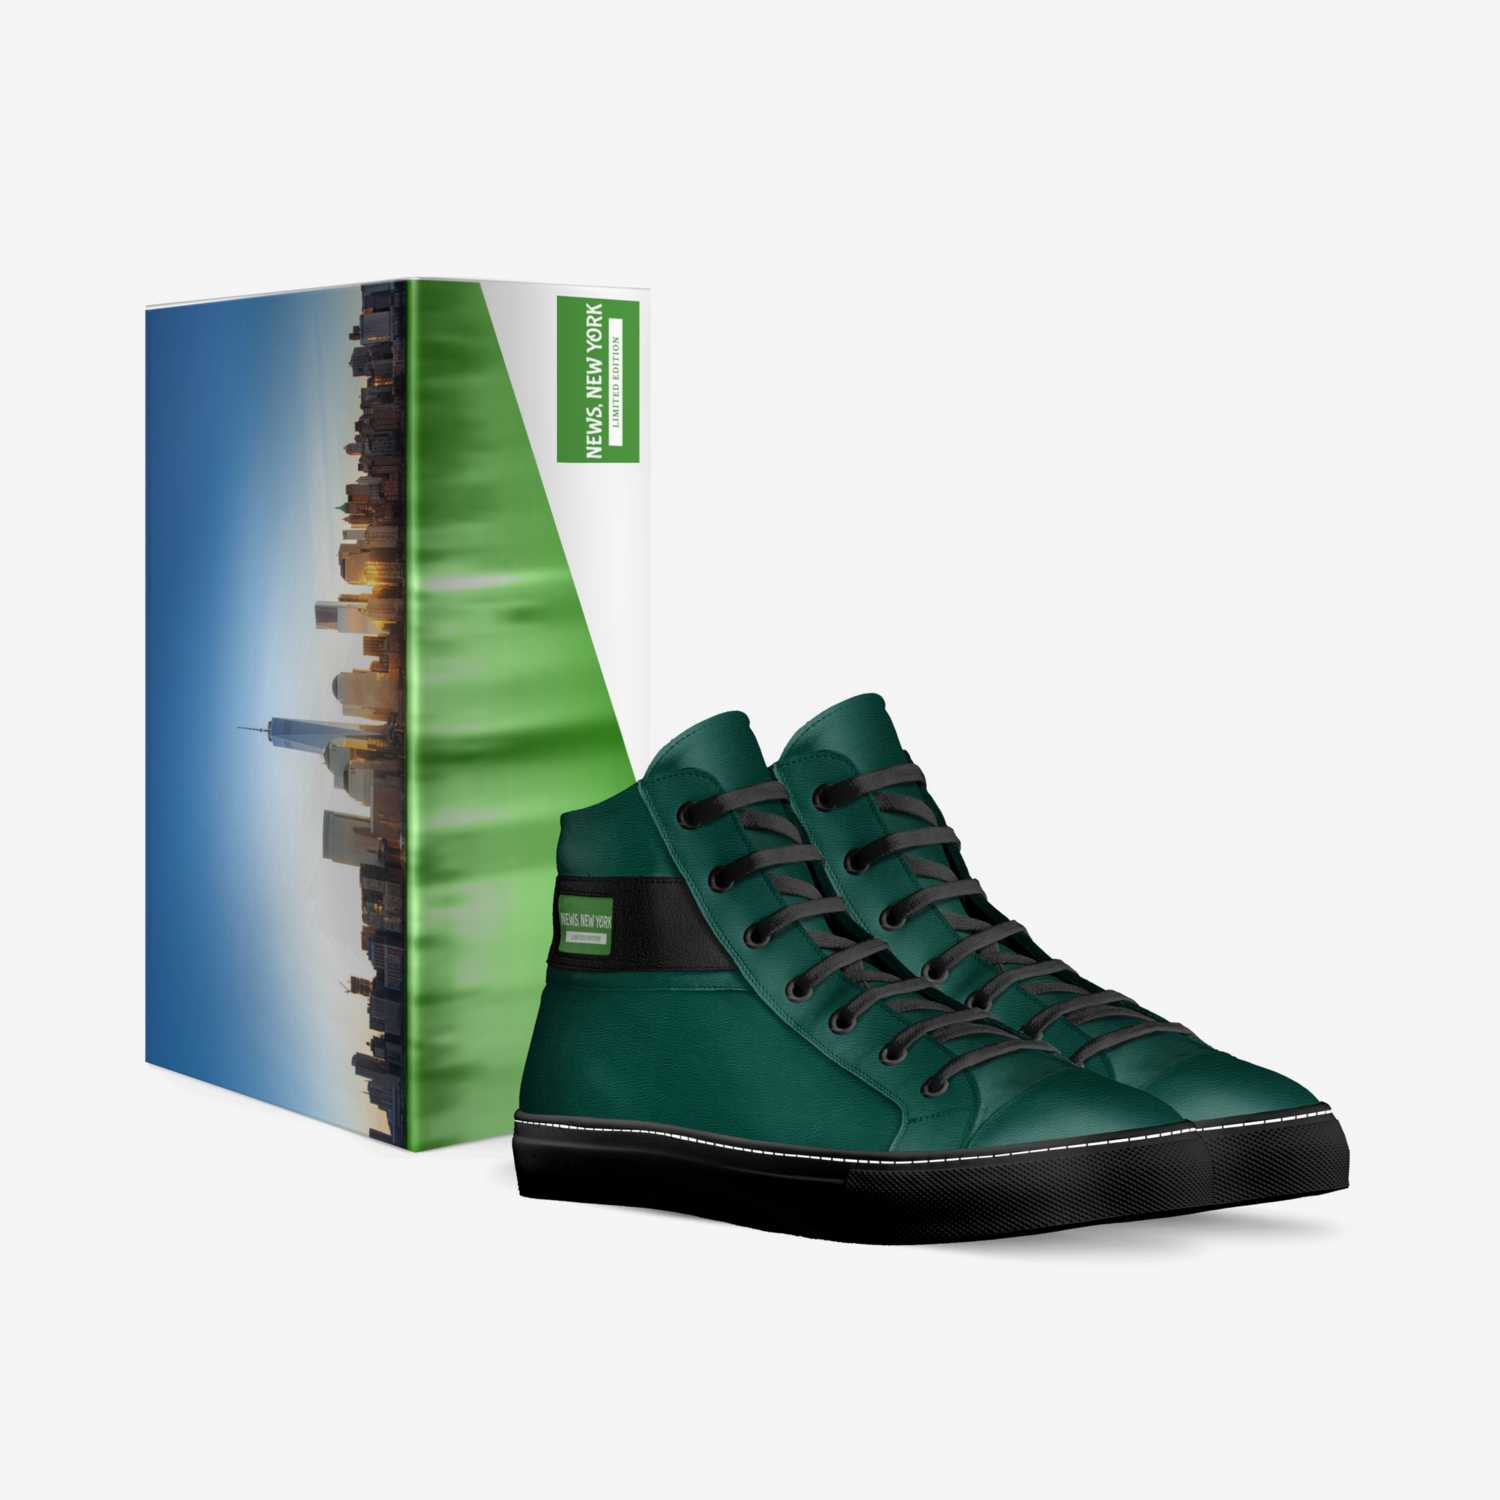 NEWS custom made in Italy shoes by Leon Newman | Box view